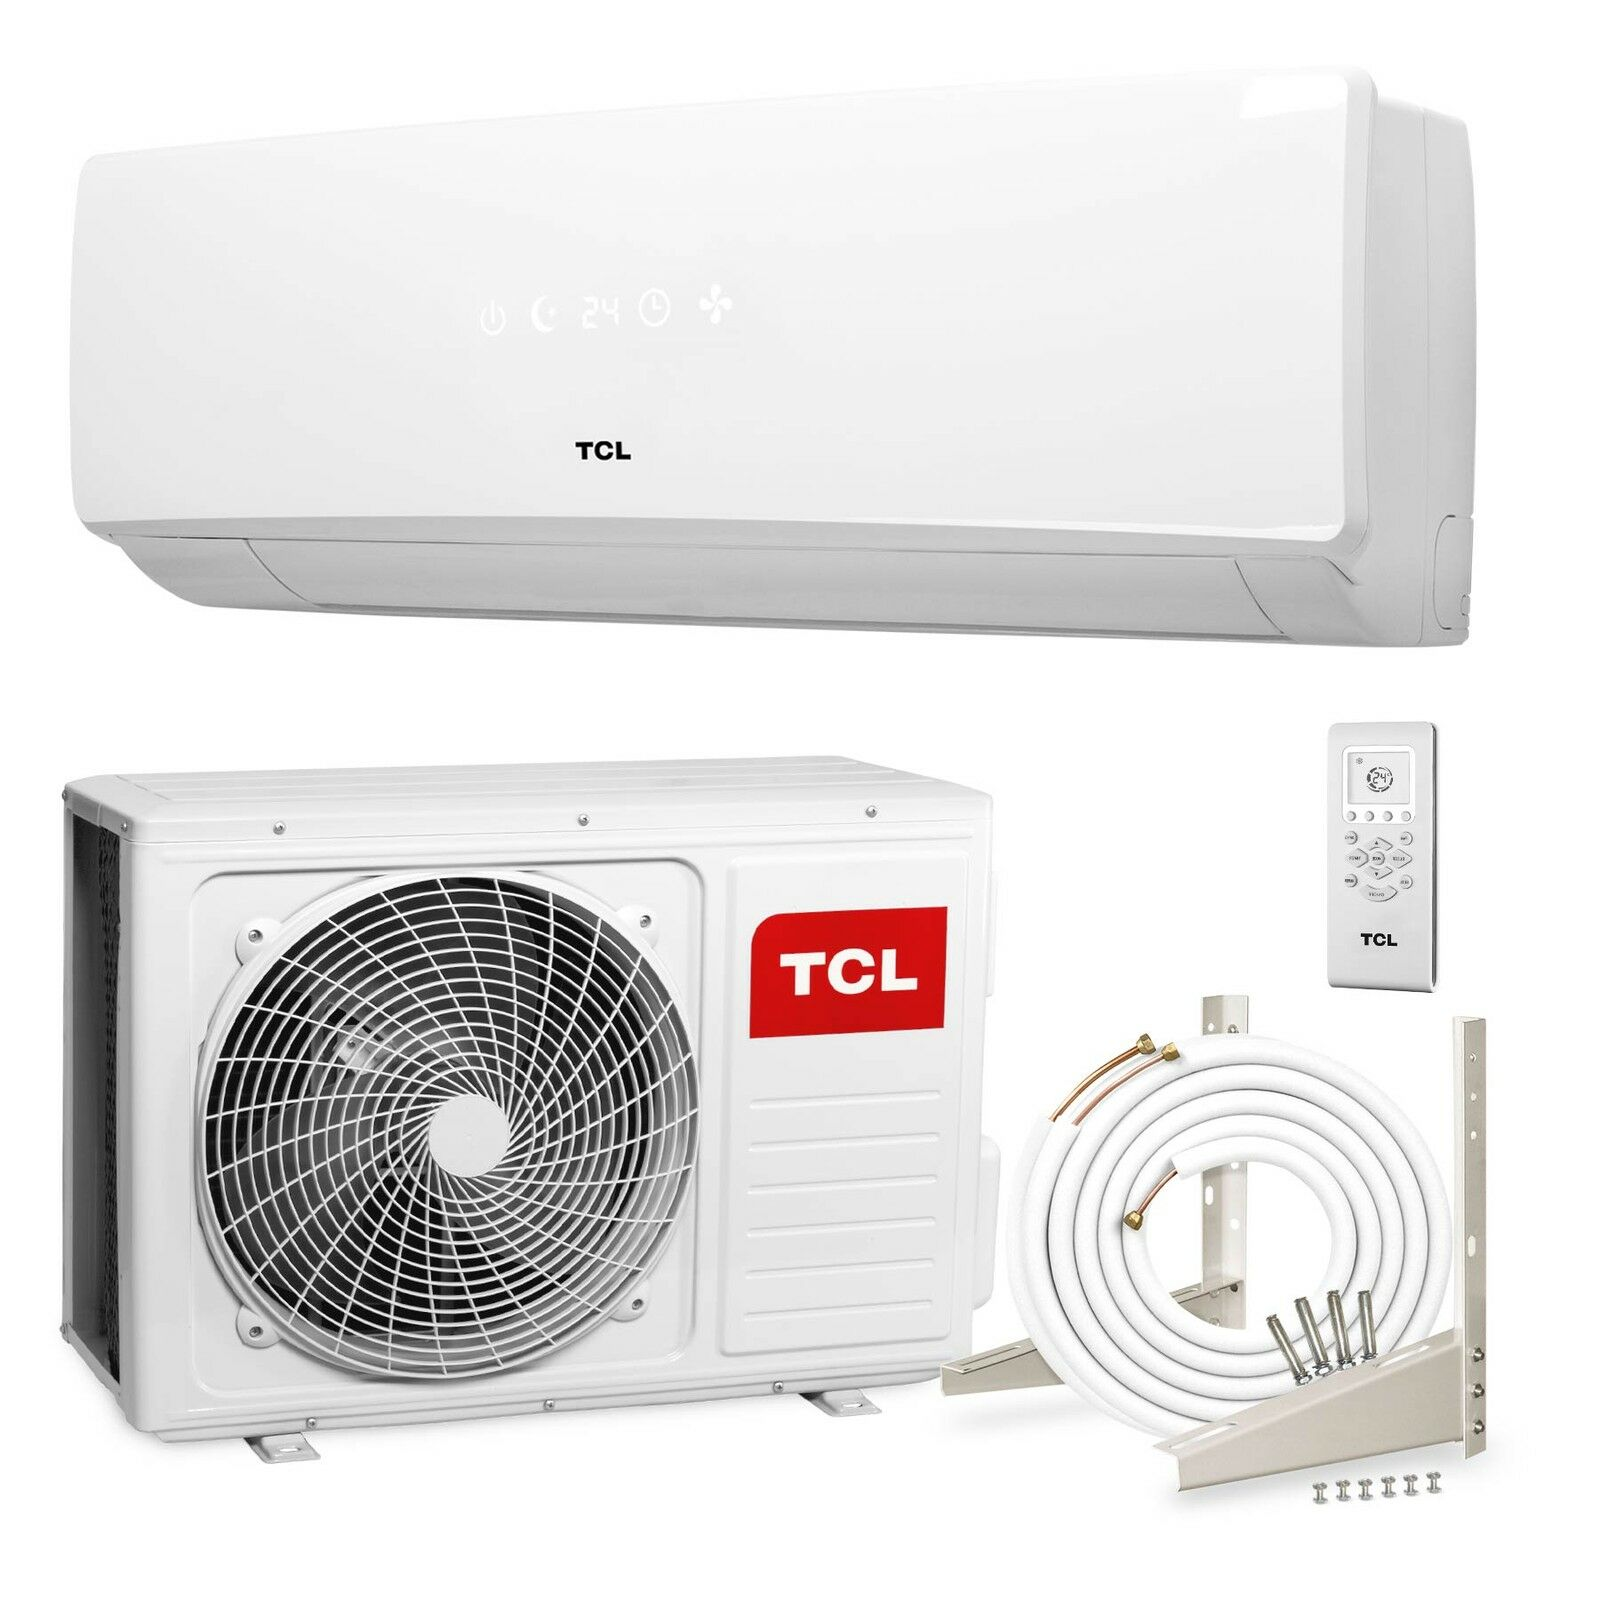 tcl inverter split klimaanlage 18000 btu 5 1kw klima klimager t modell ka eur 999 00. Black Bedroom Furniture Sets. Home Design Ideas